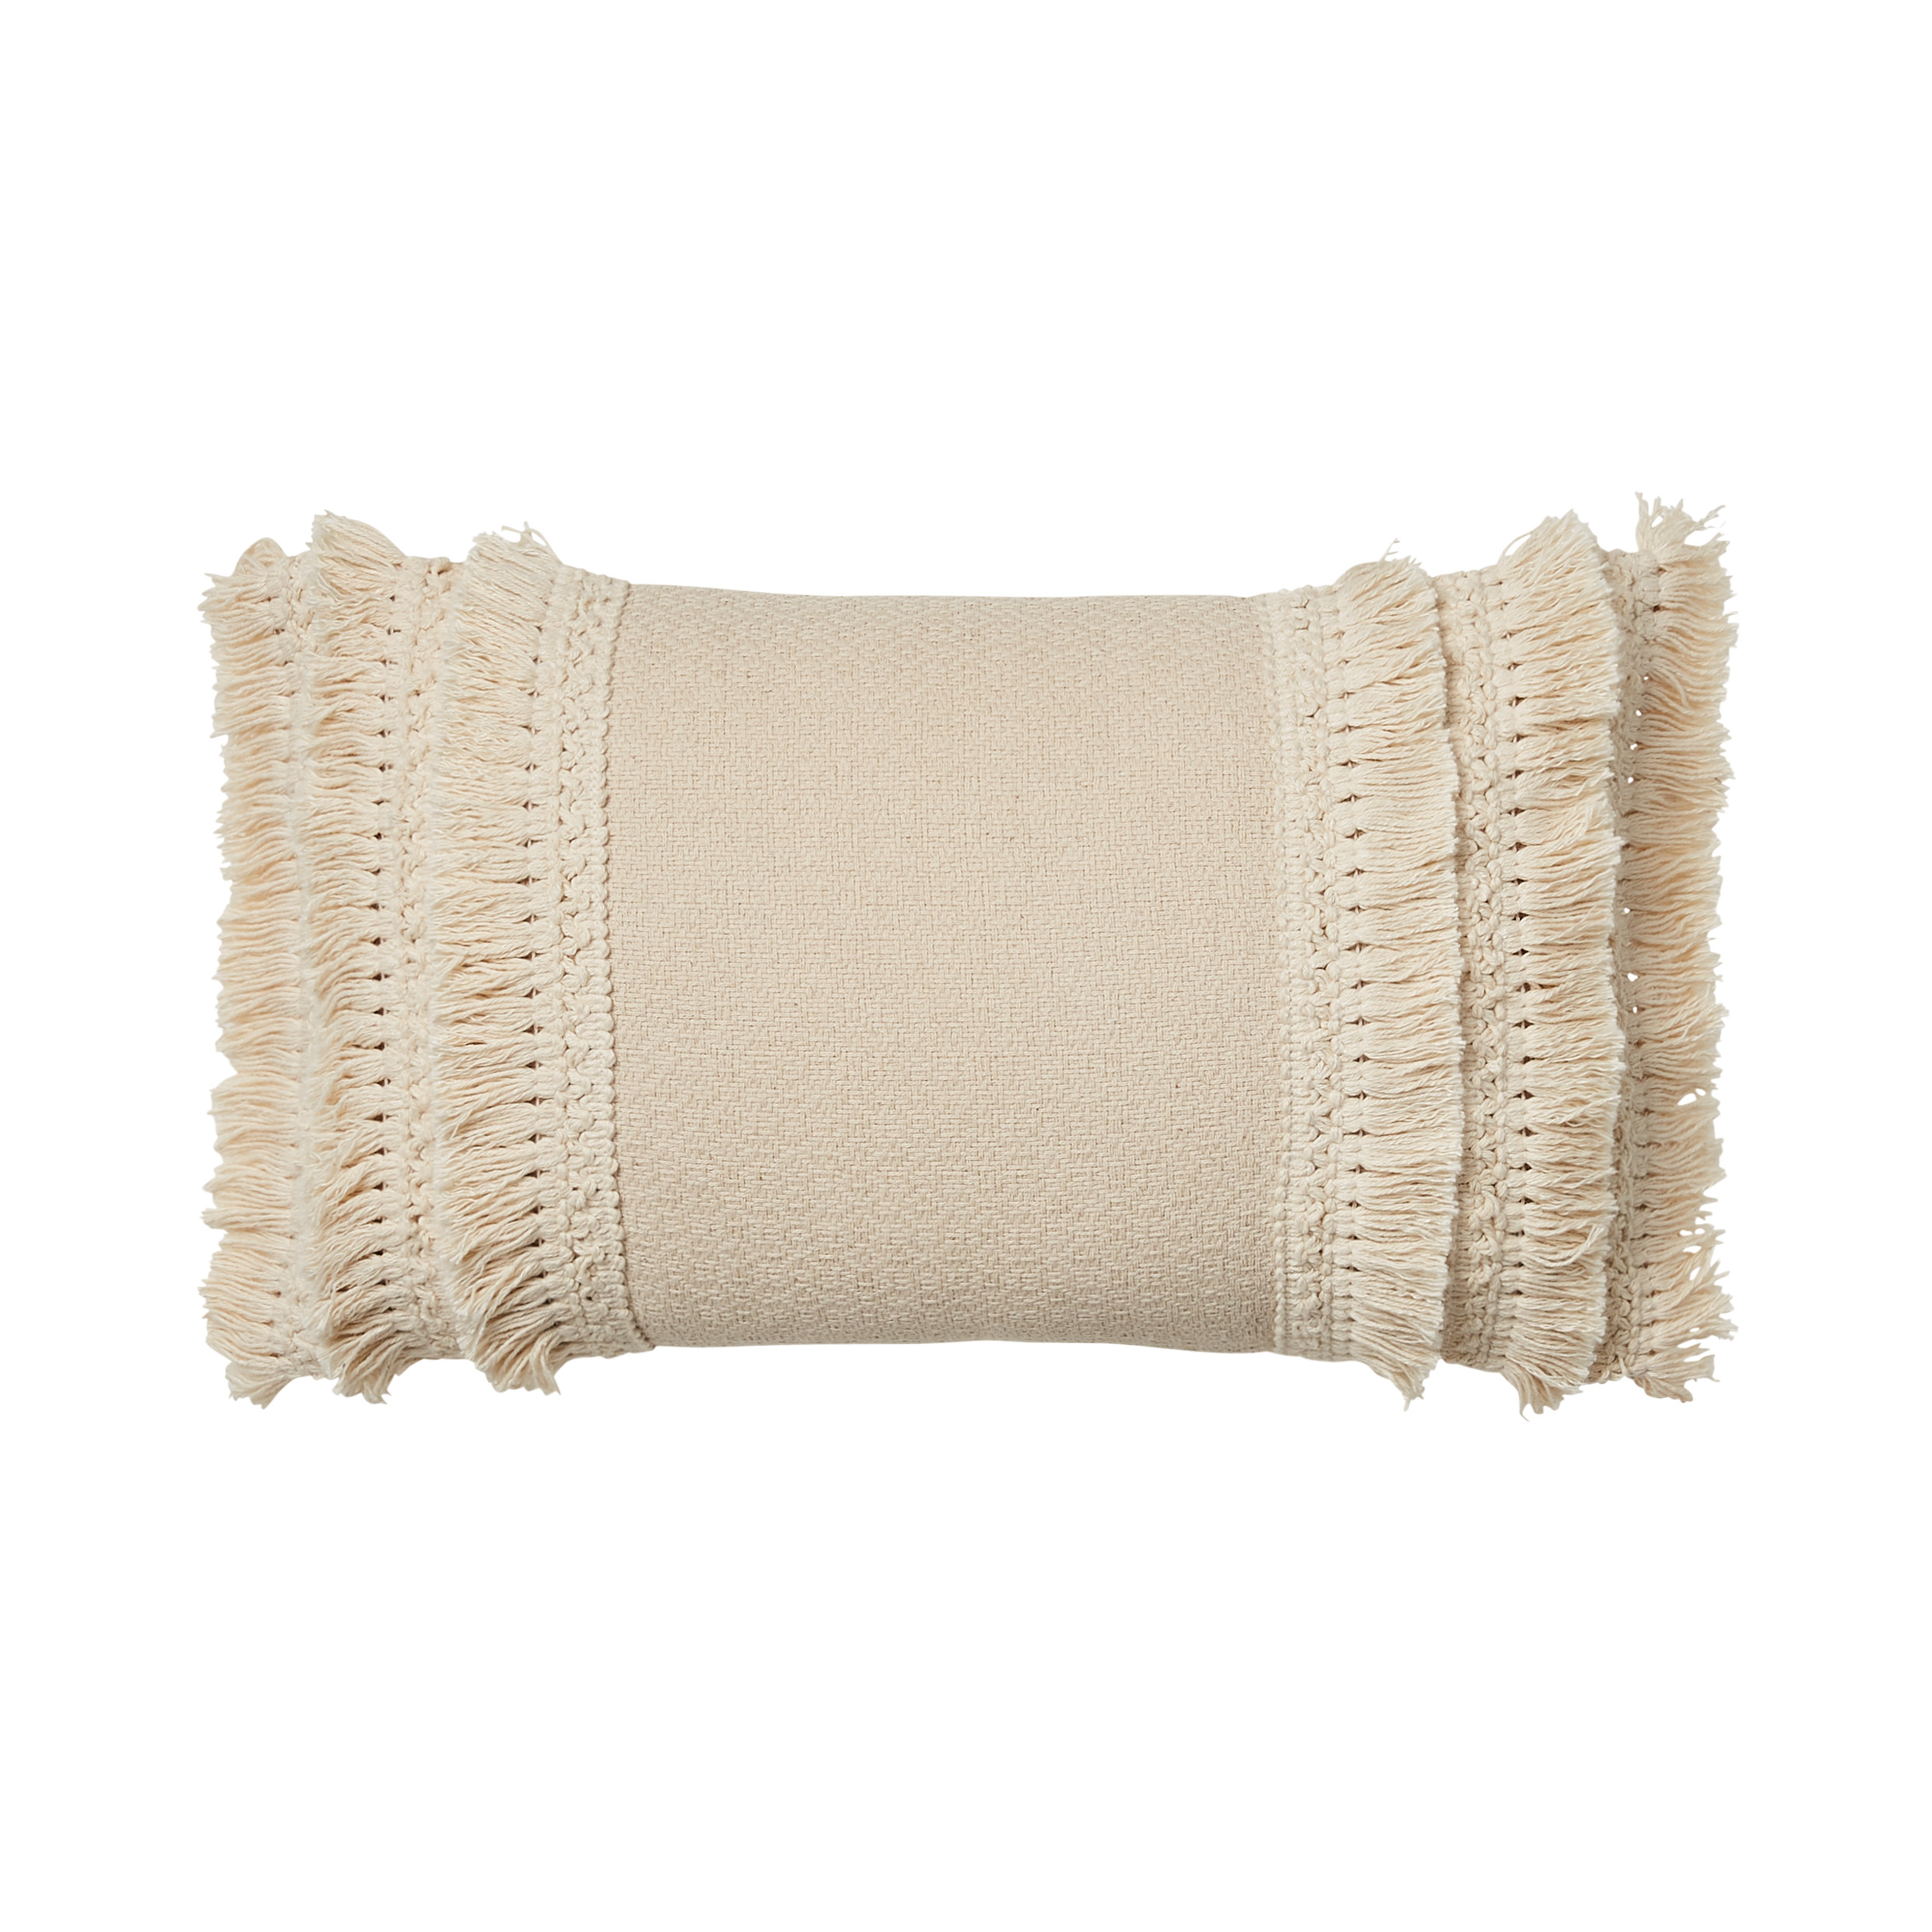 44538_Natural Boracay Cushion 30x50cm FringedS18 Front.jpg